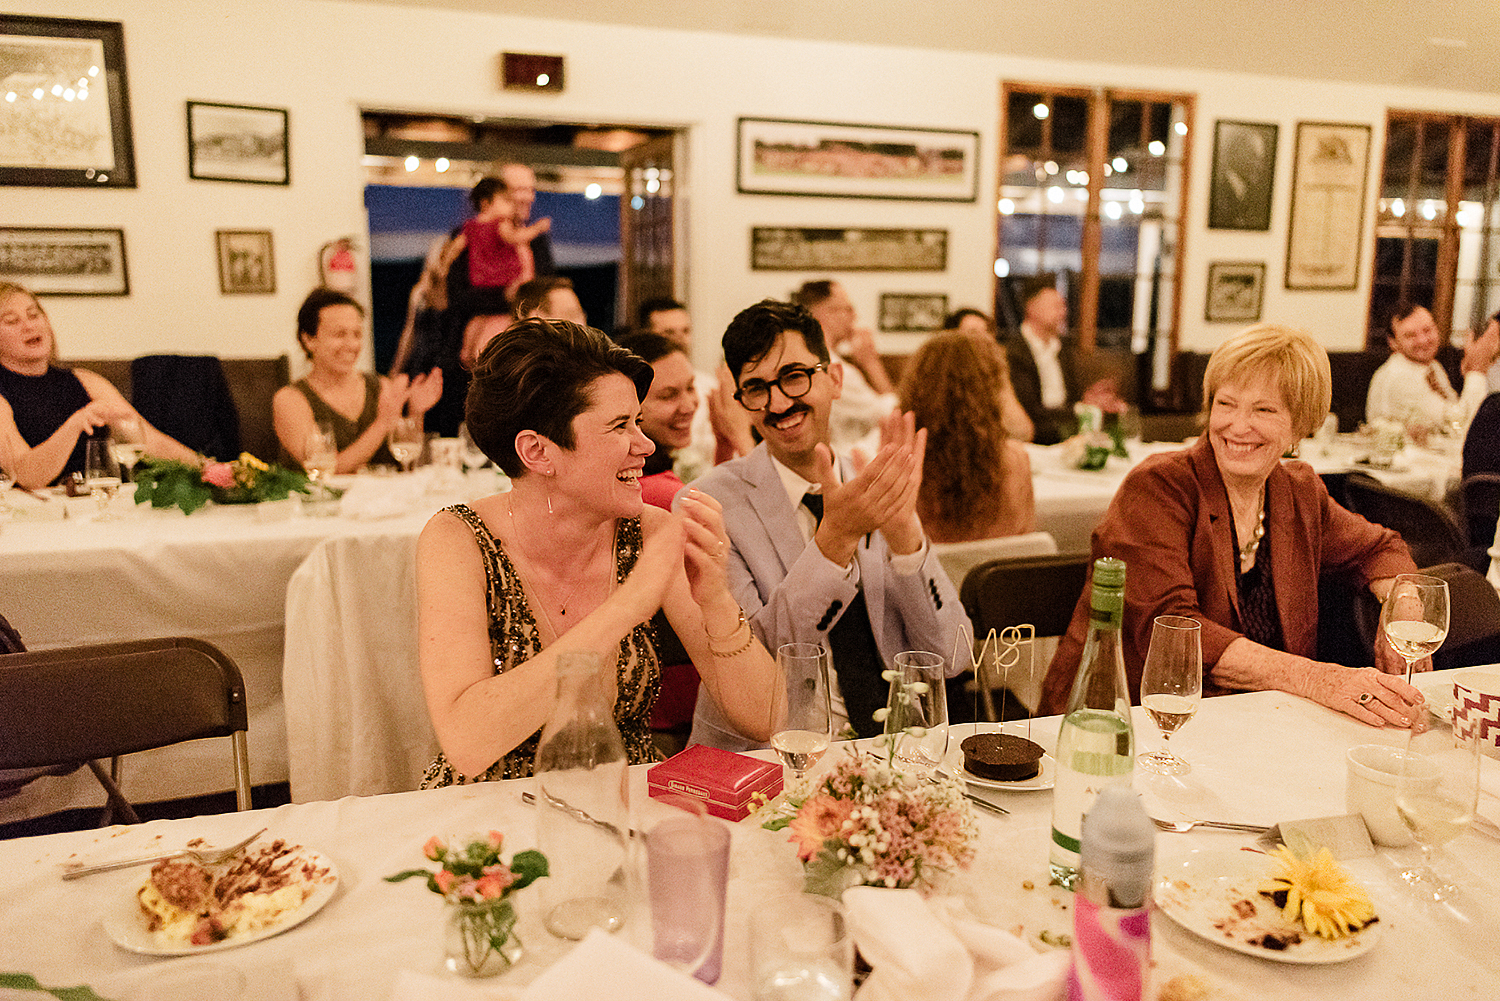 Best-Wedding-Photographers-in-Toronto-with-Photojournalistic-Documentary-Style-3B-Photography-Brian-Batista-Bettencourt-Intimate-Vintage-Wedding-at-Toronto-Island-Cafe-Clubhouse-Reception-First-Dance-moment-Reaction.jpg